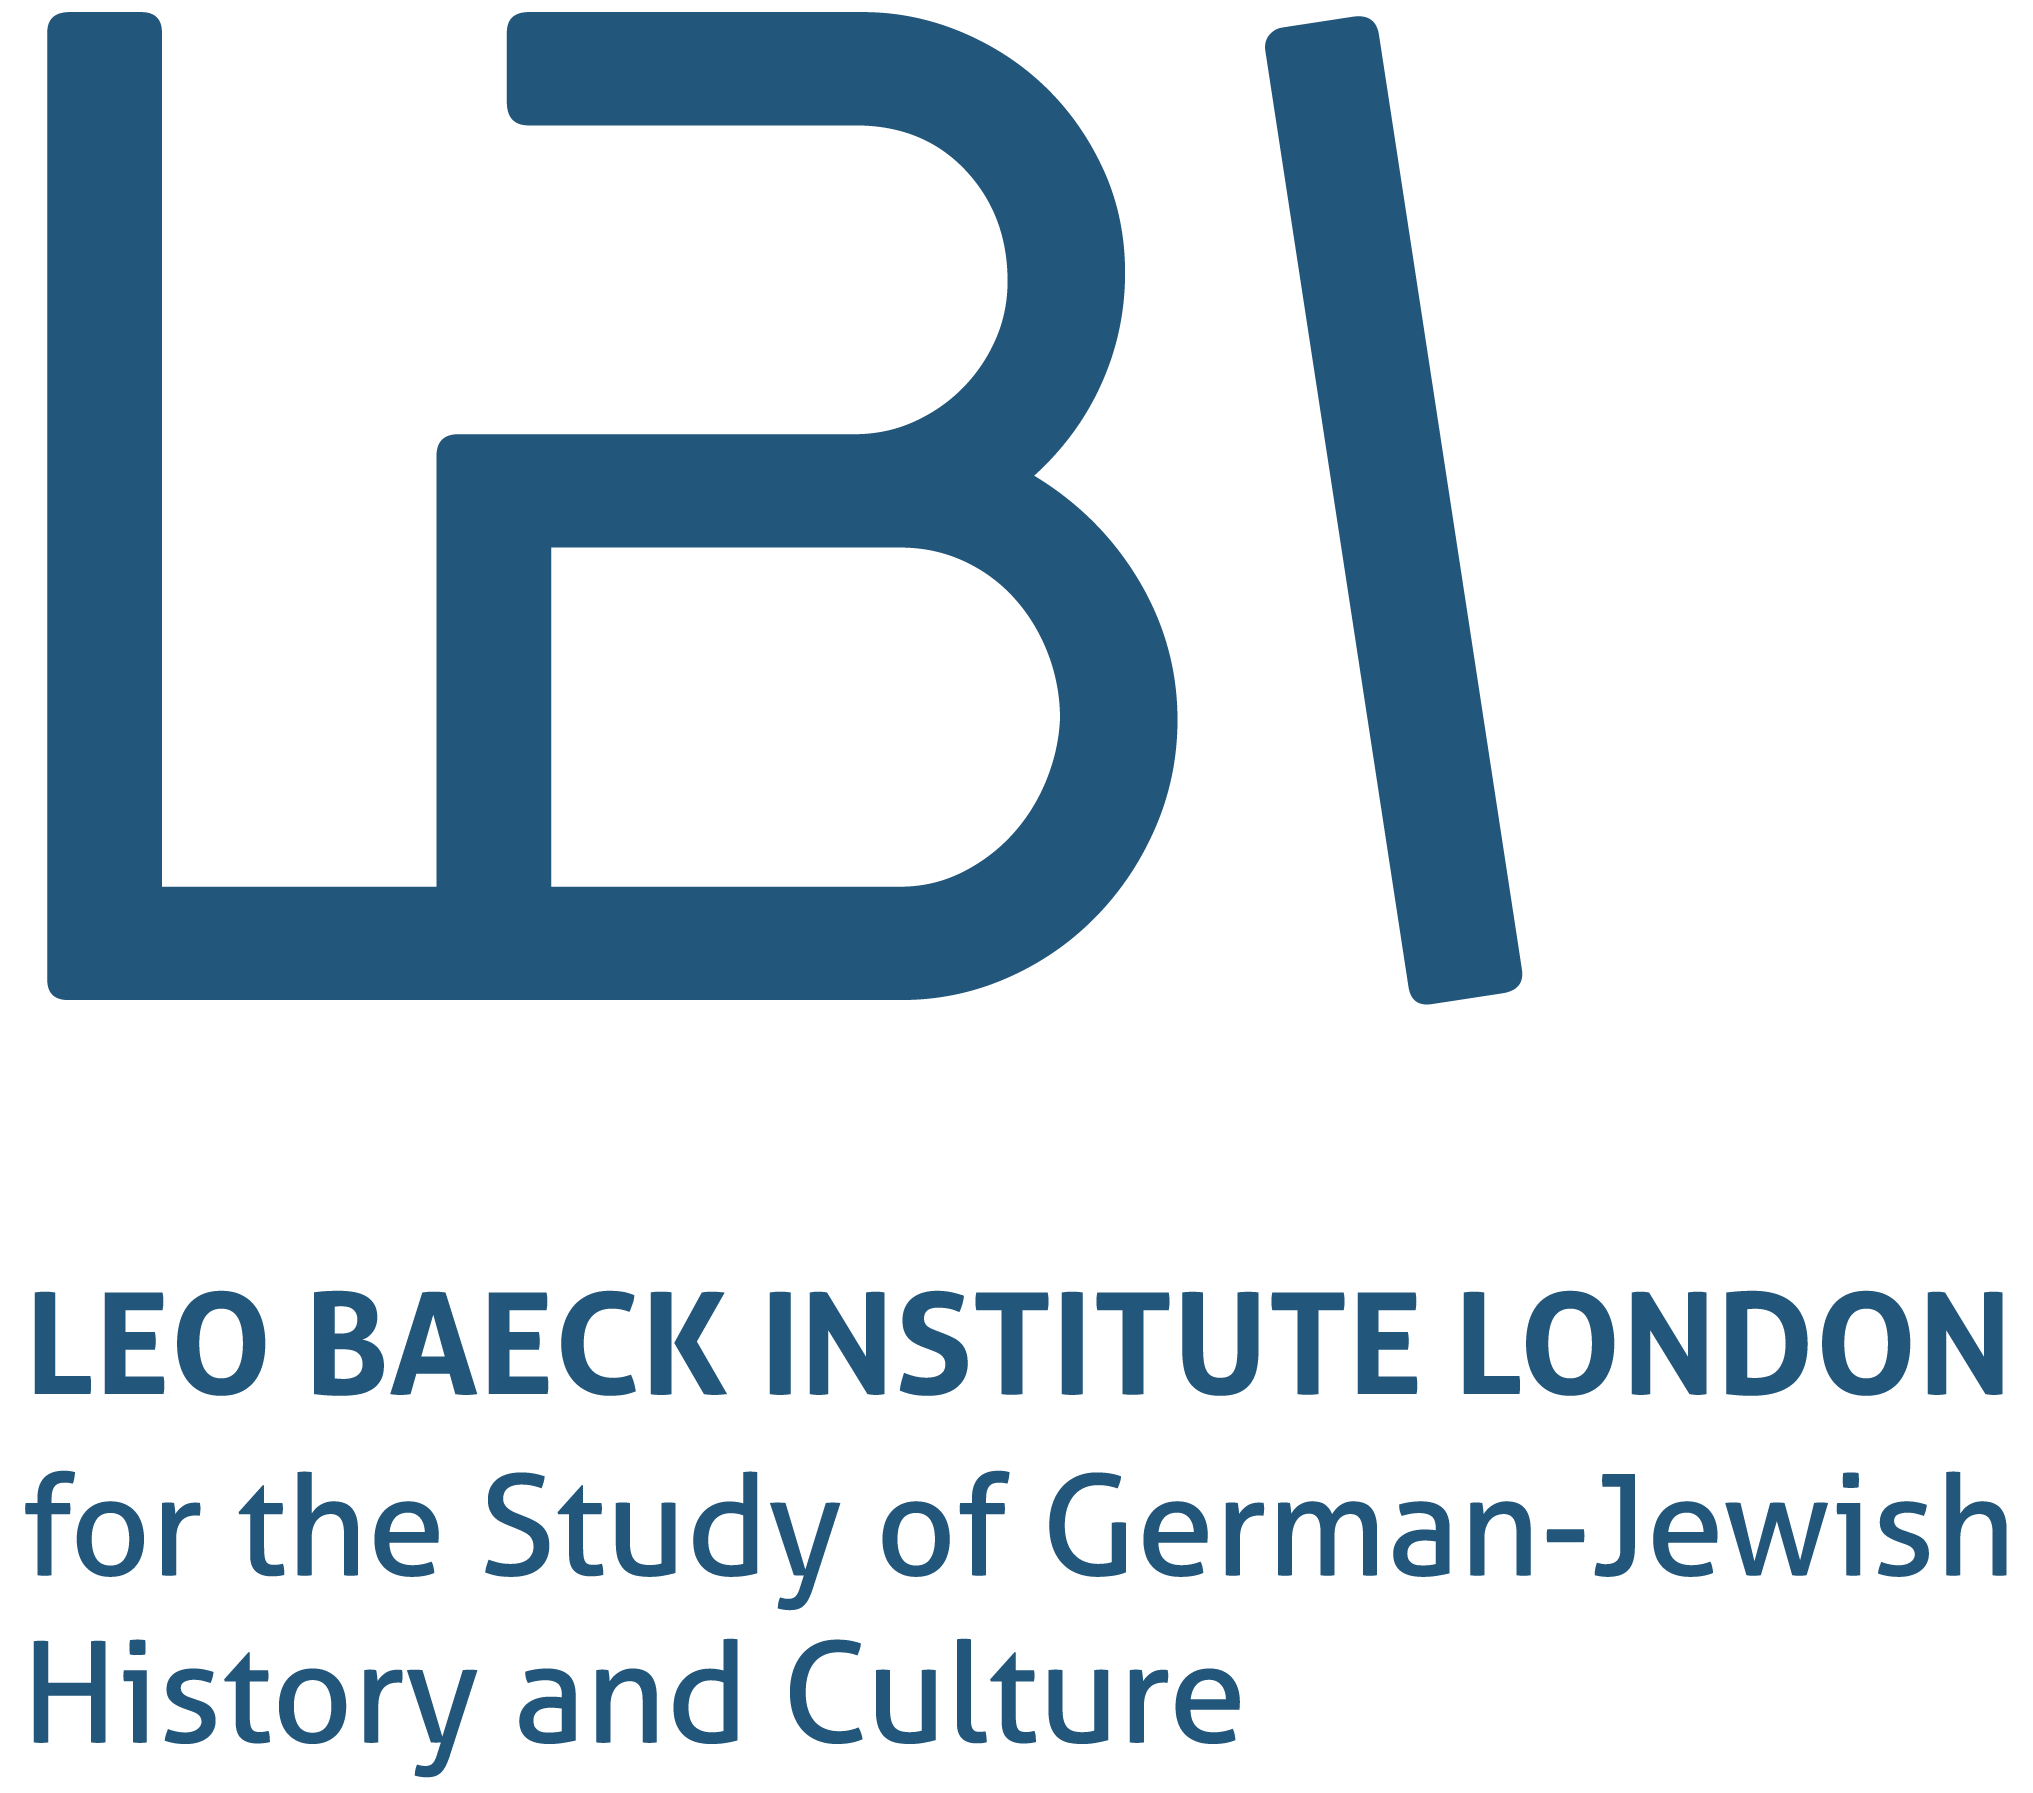 Leo Baeck Institute London